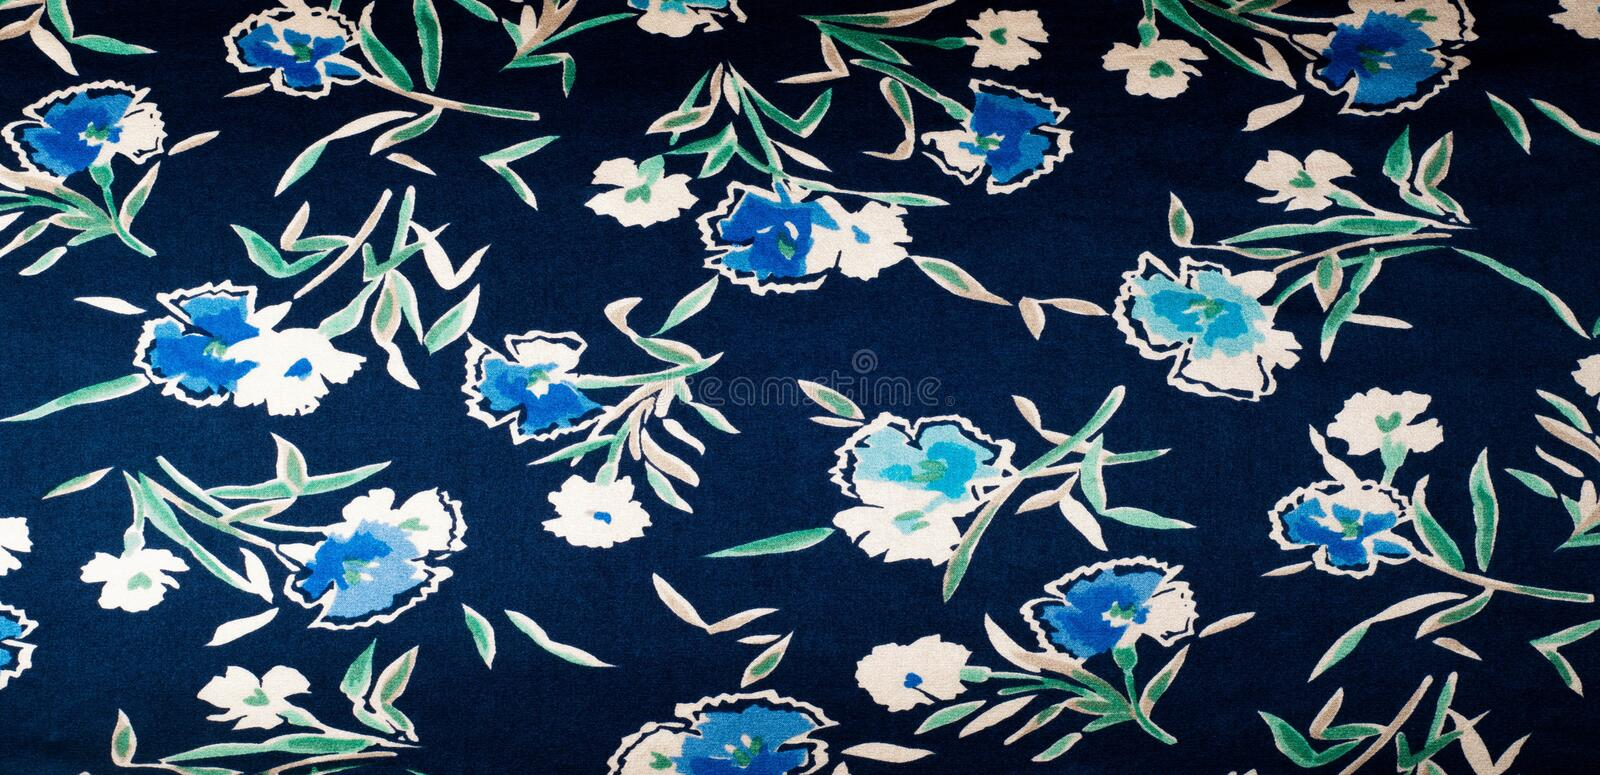 Fabric silk texture blue, flowers, abstract. A fine, strong, soft, lustrous fiber produced by silkworms in making cocoons and collected to make thread and stock photos